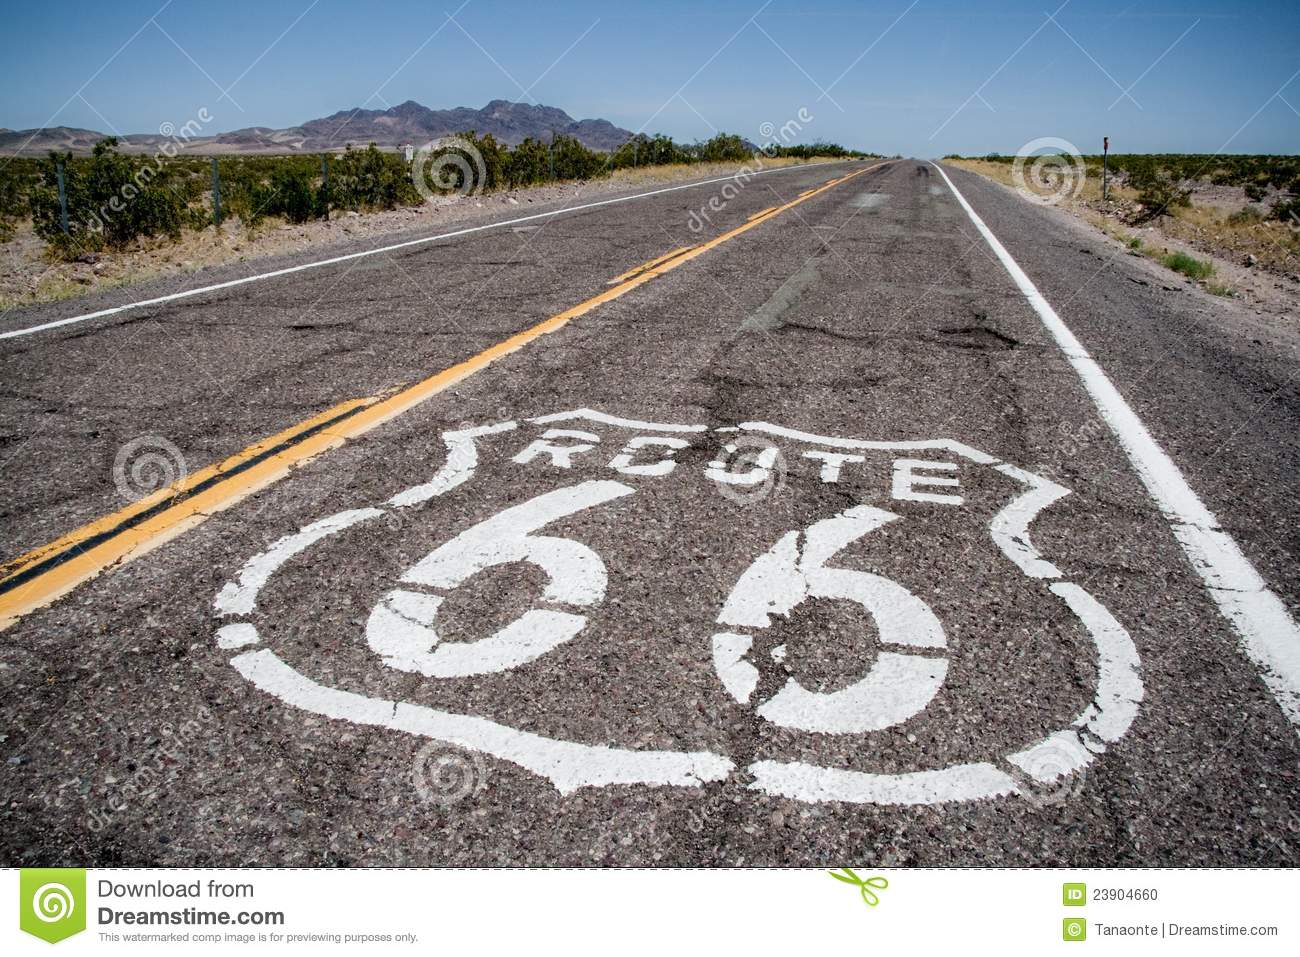 long road with a route 66 logo painted on it stock photo - image of